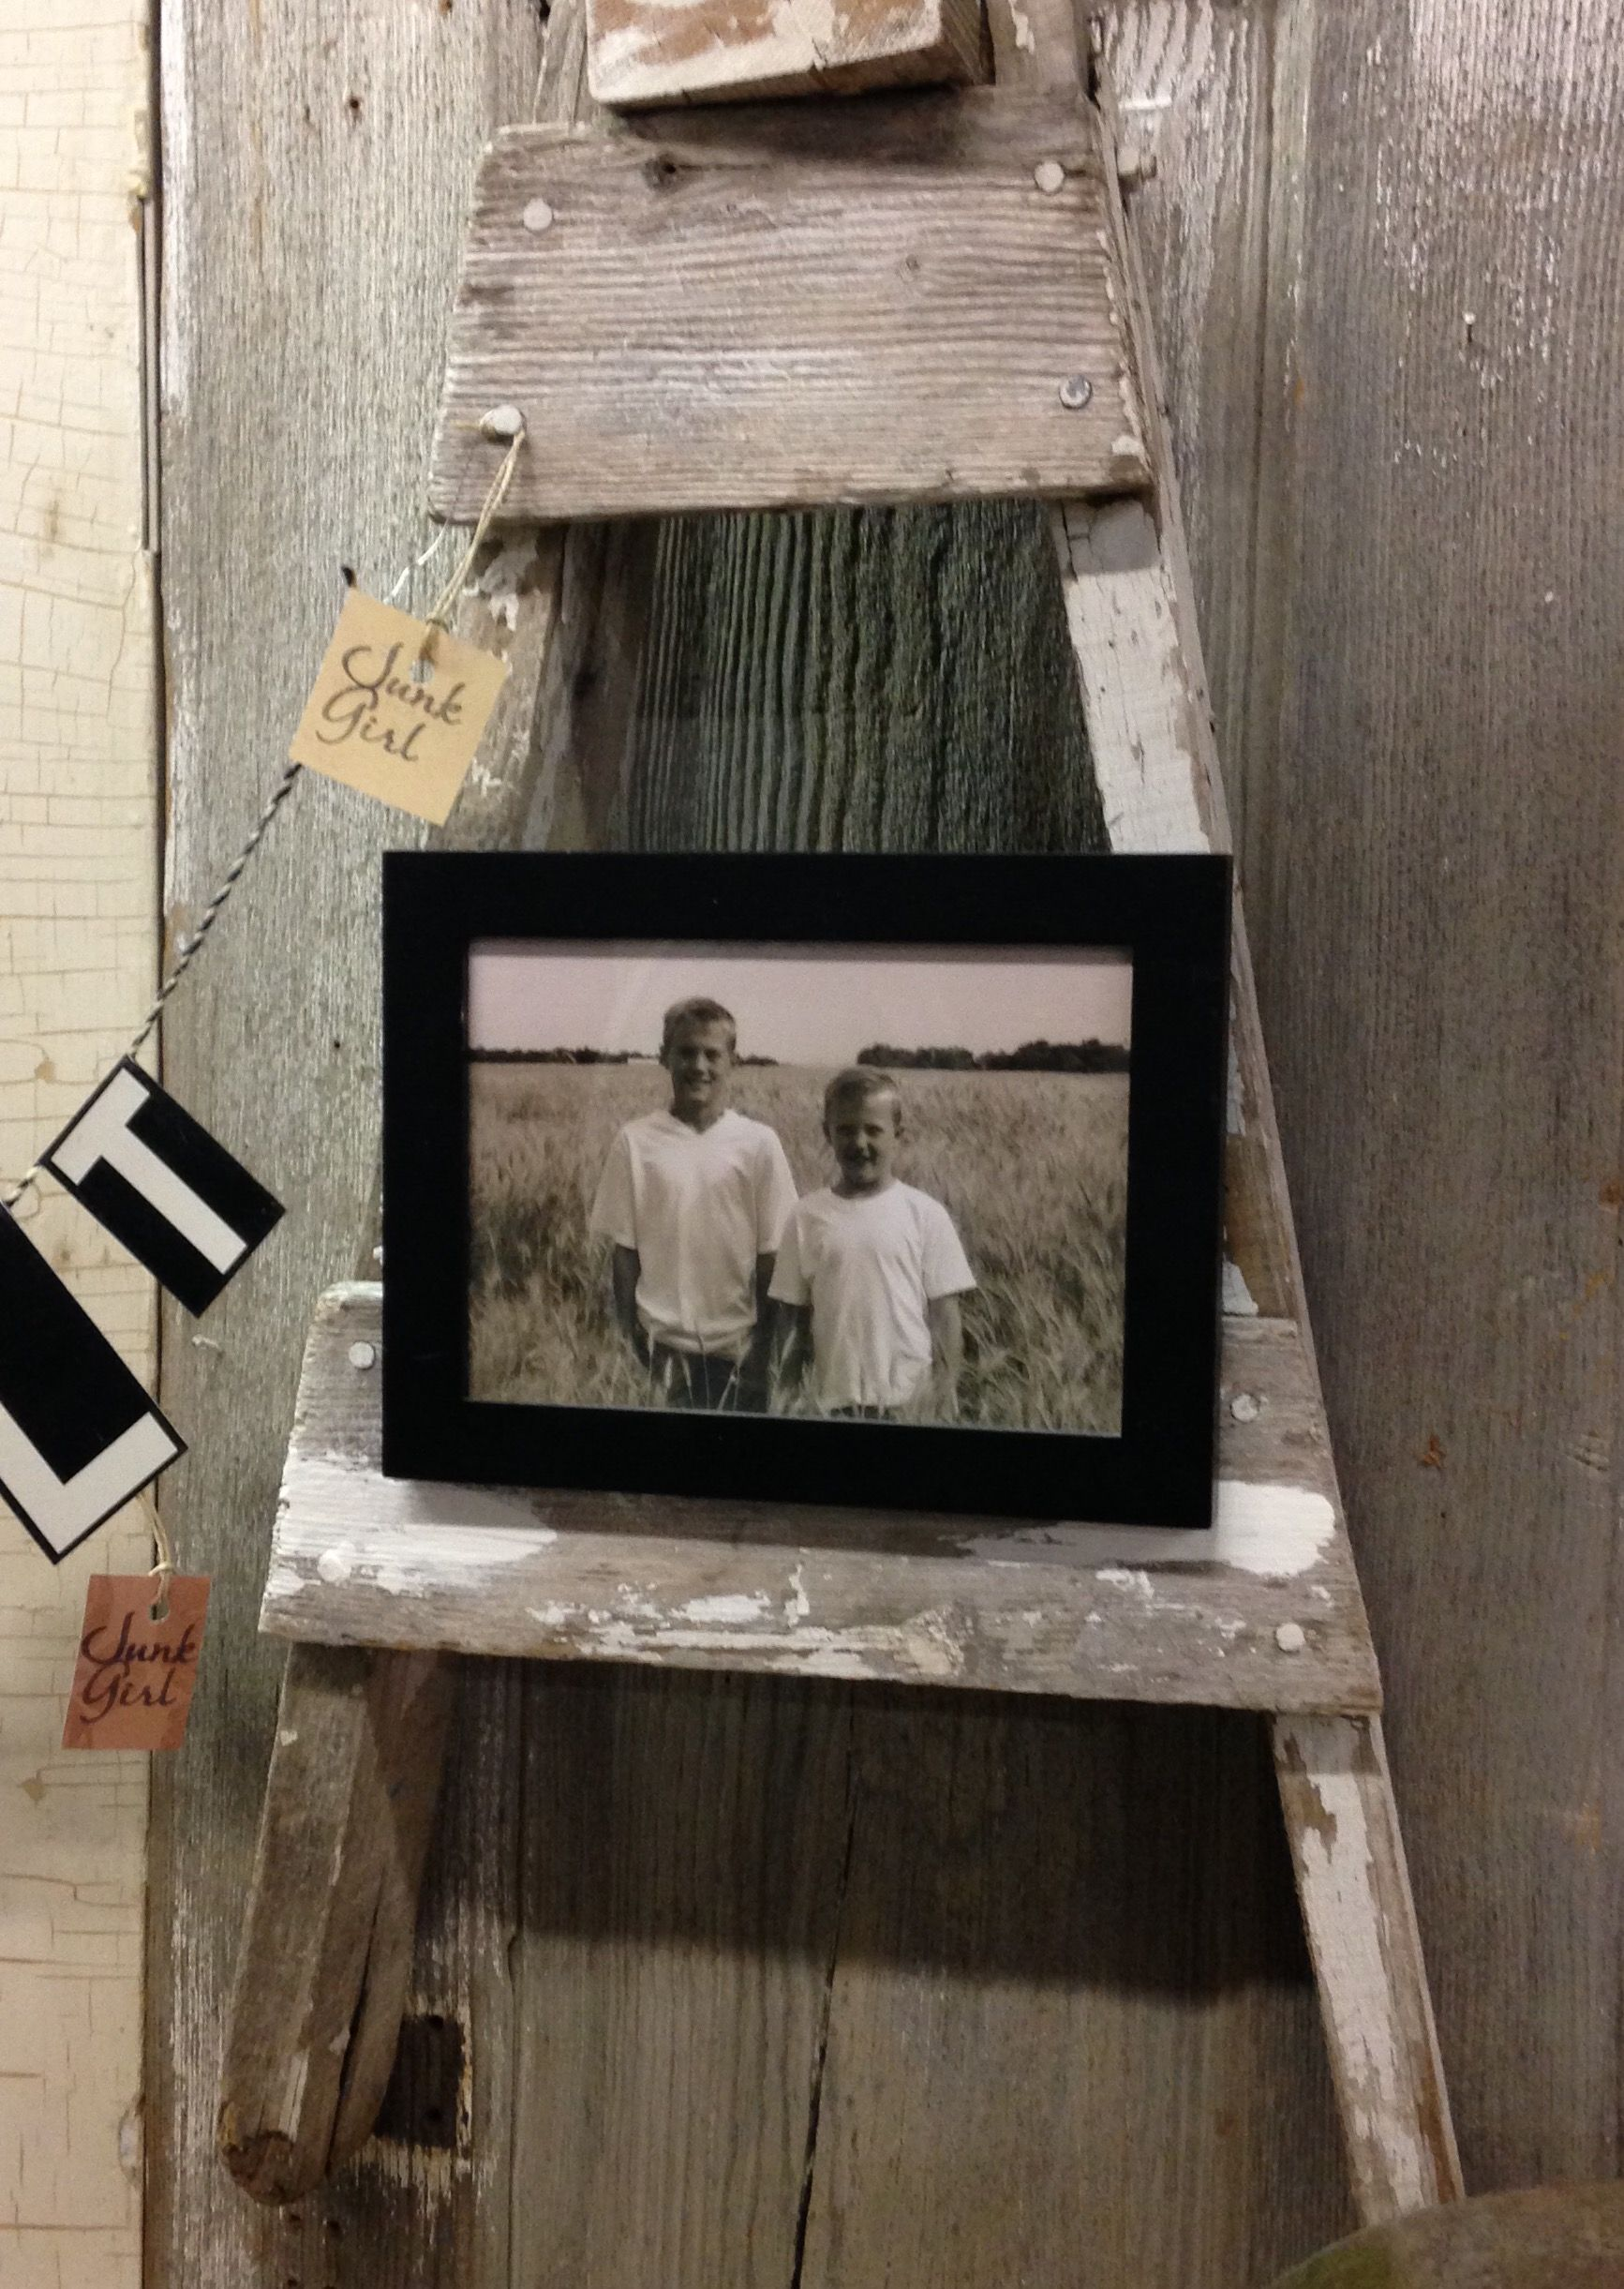 Pin by Andrea Miller on ND Junkgirl = My creations ... on Easel Decorating Ideas  id=88703